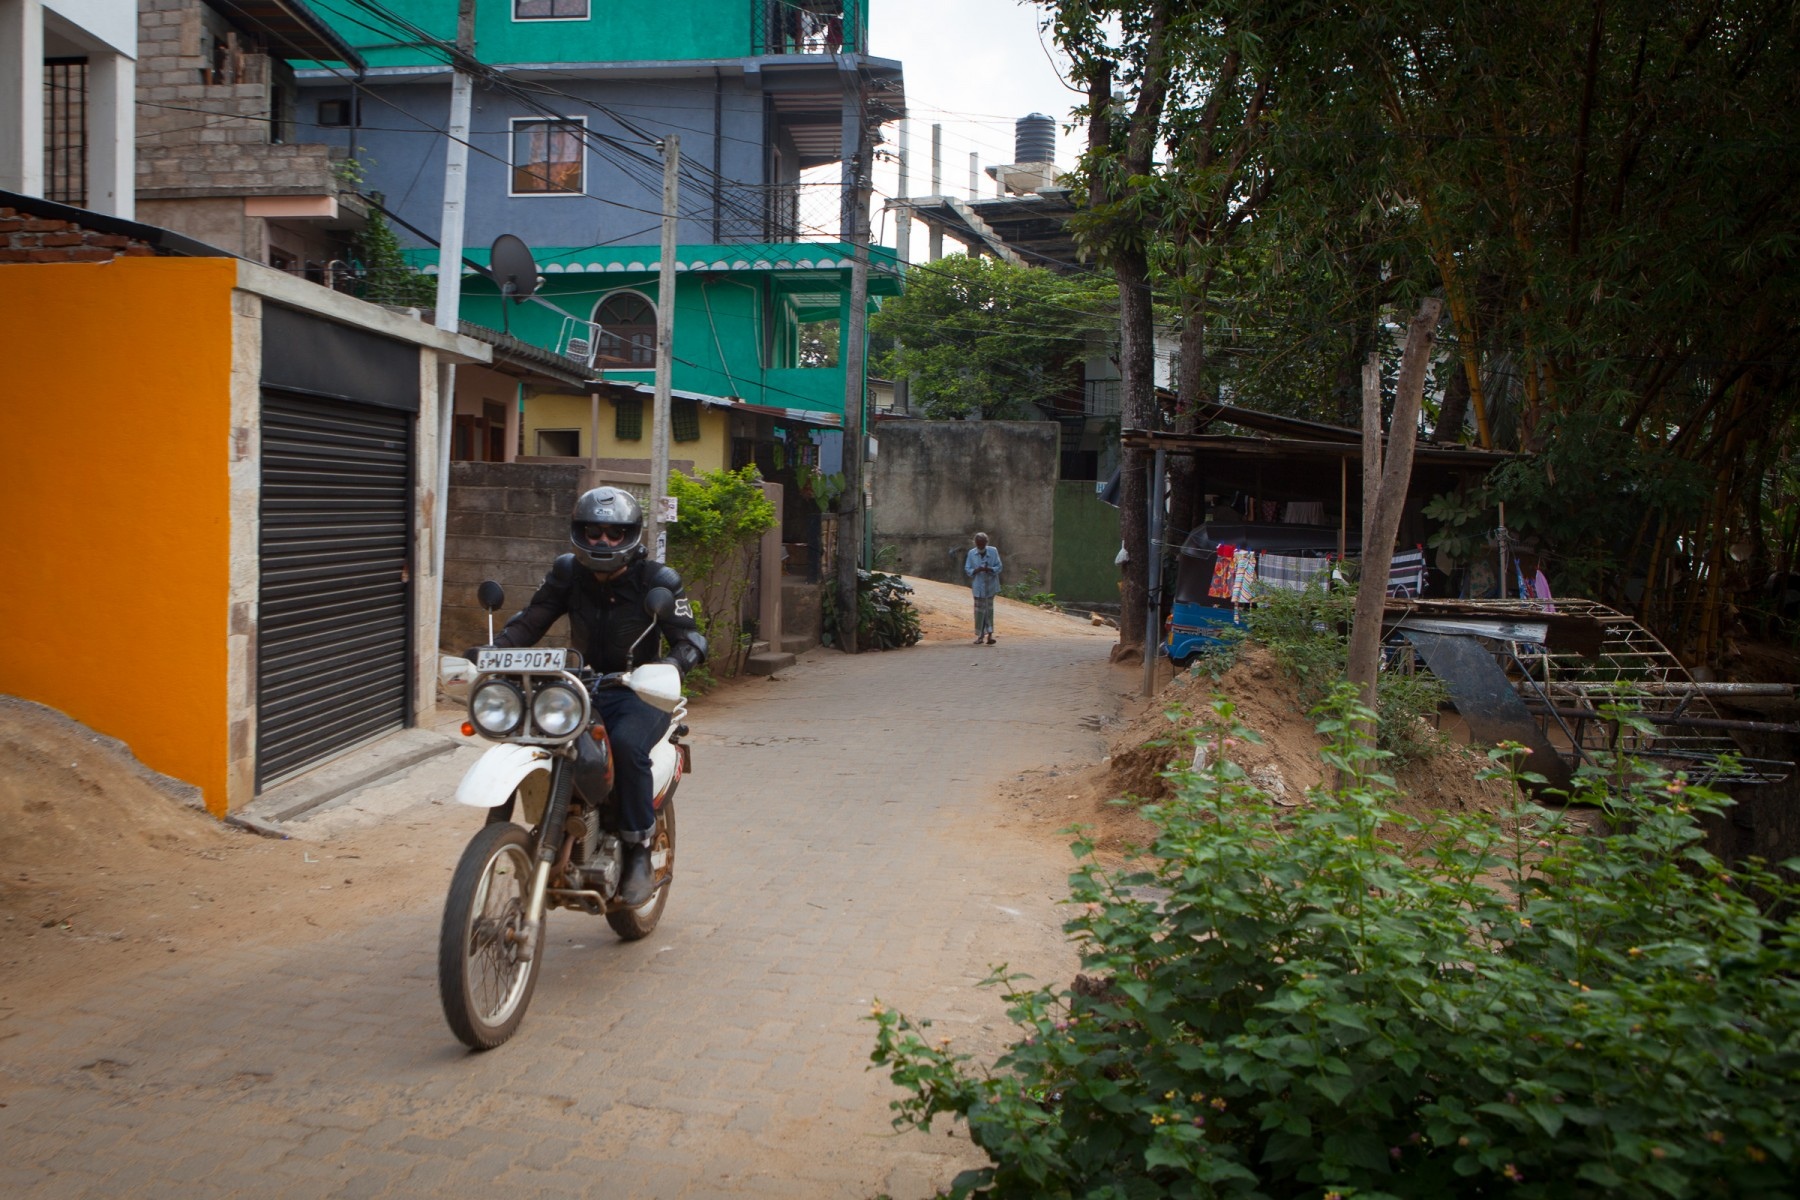 Ryan rides through the colourful streets of Kandy.